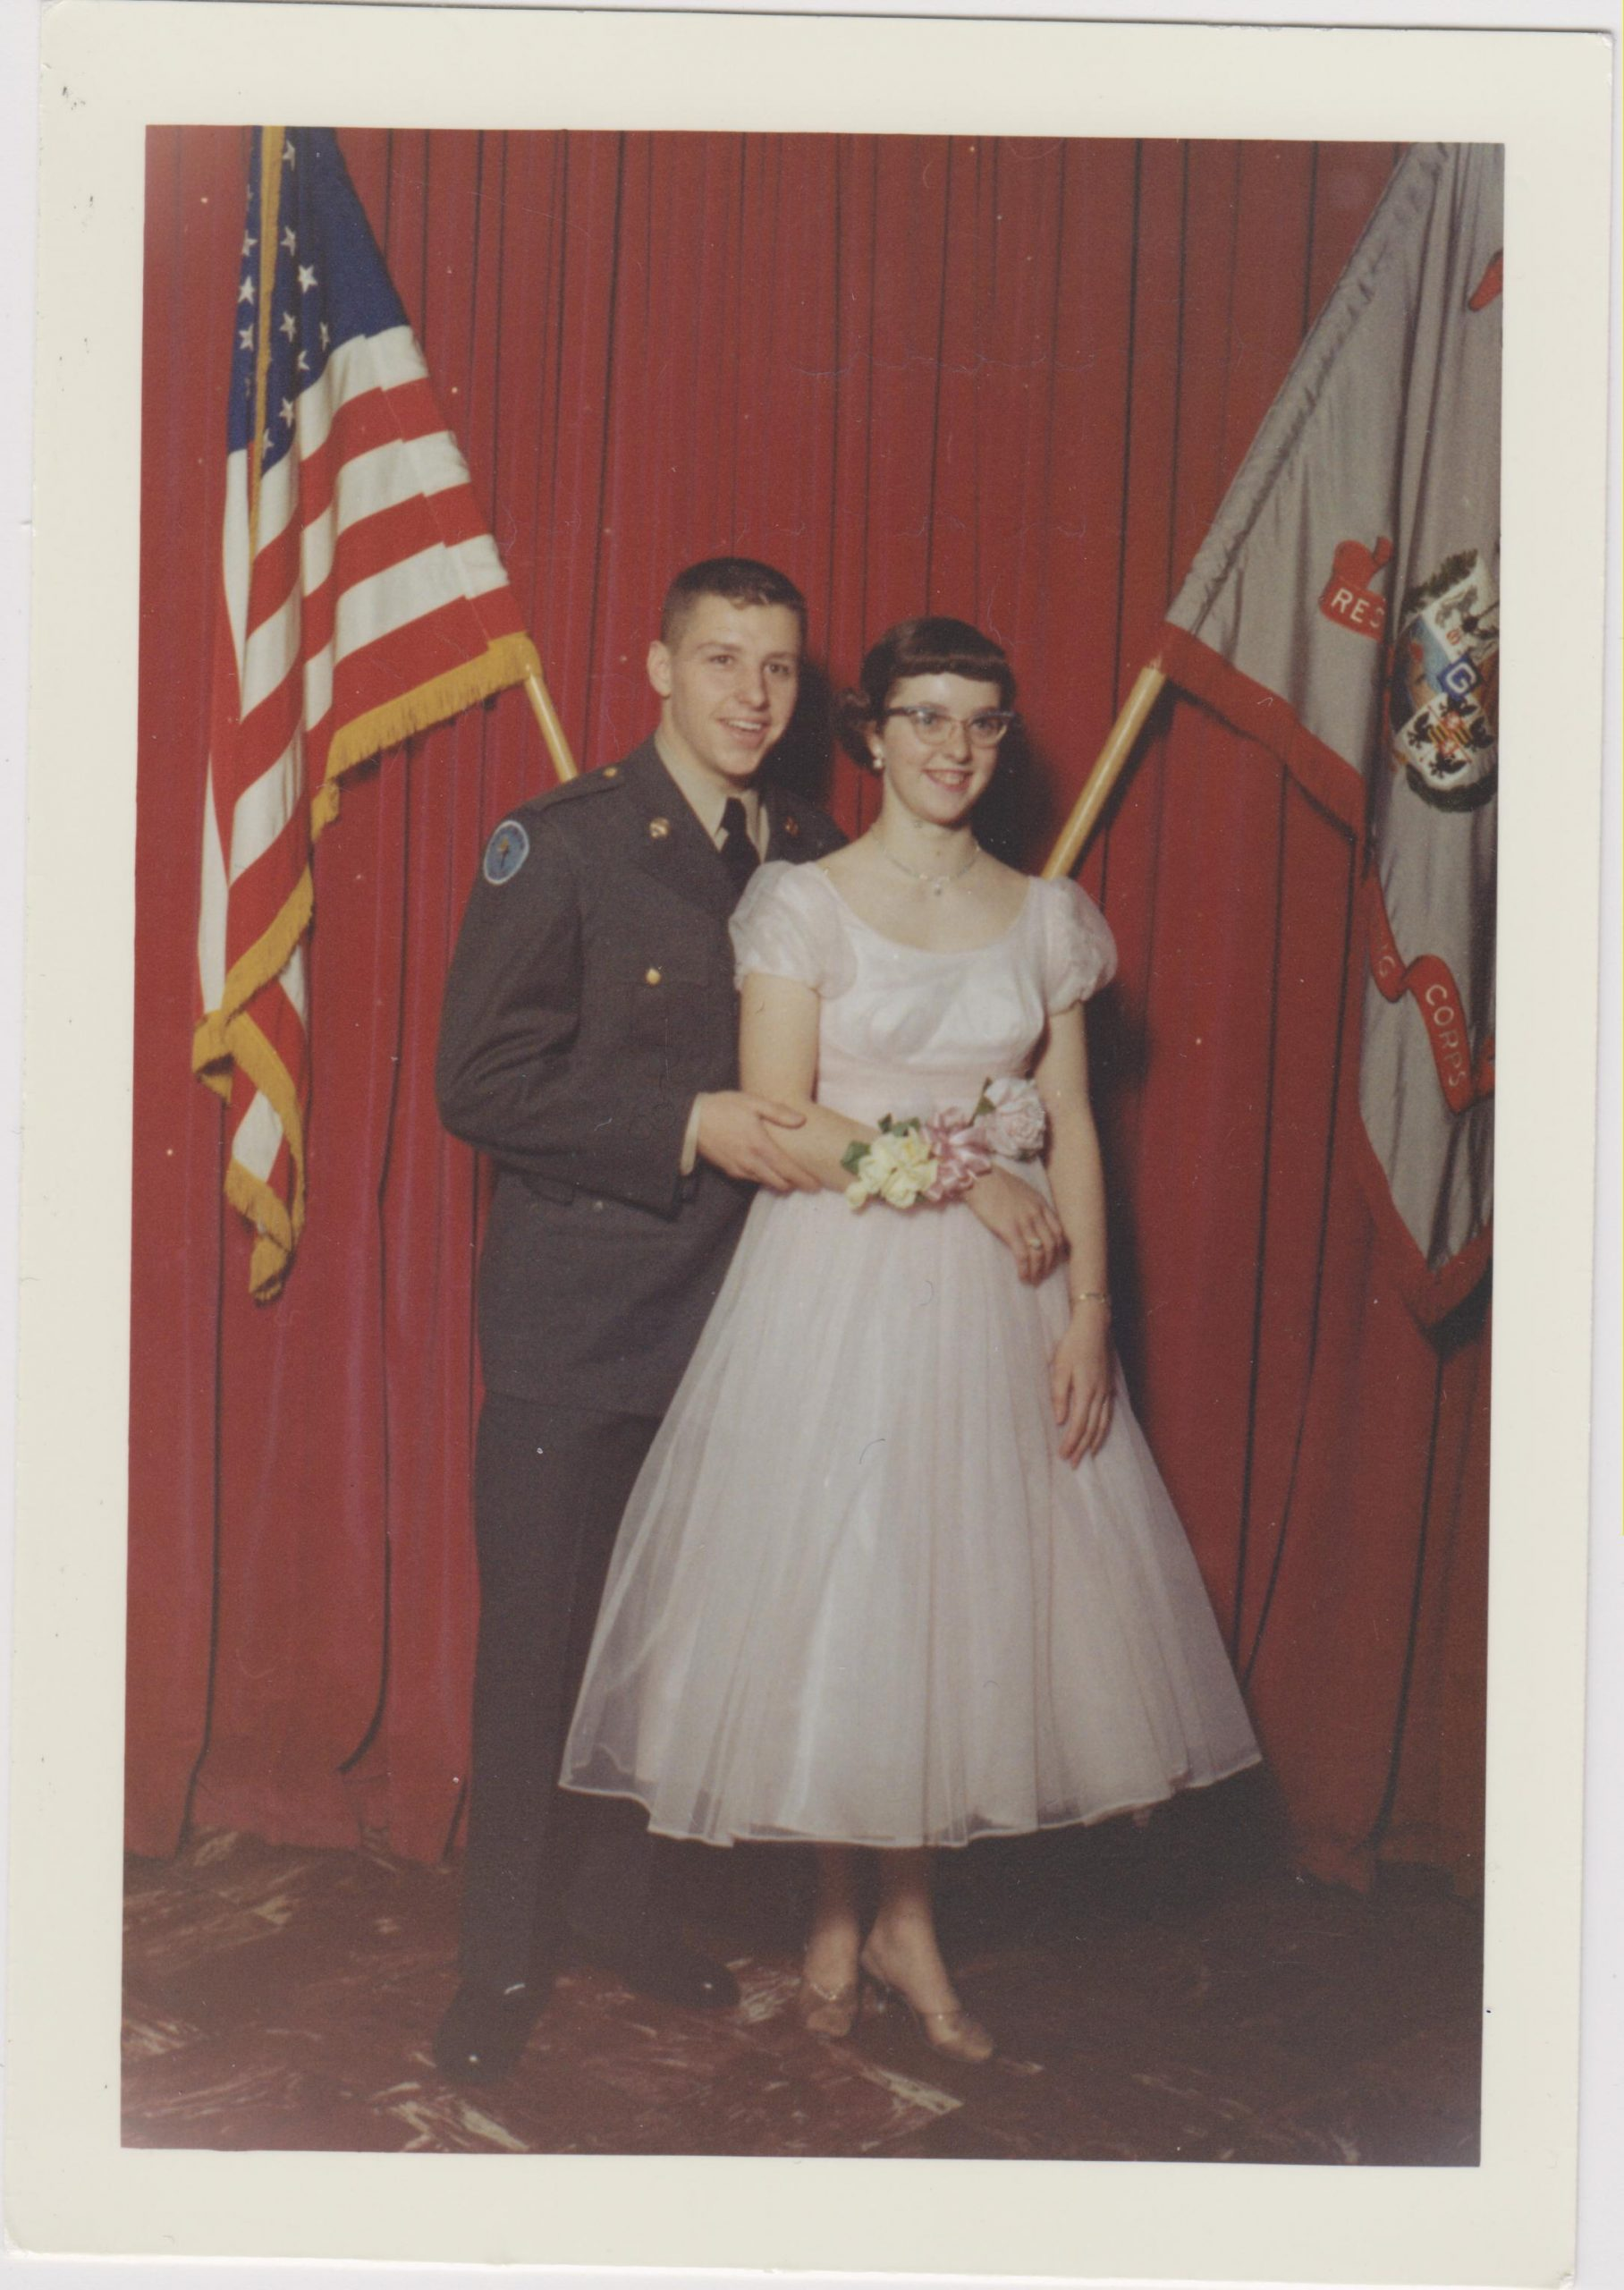 Kathleen Ross, snjm in a white dress posing with a young man dressed in a military uniform